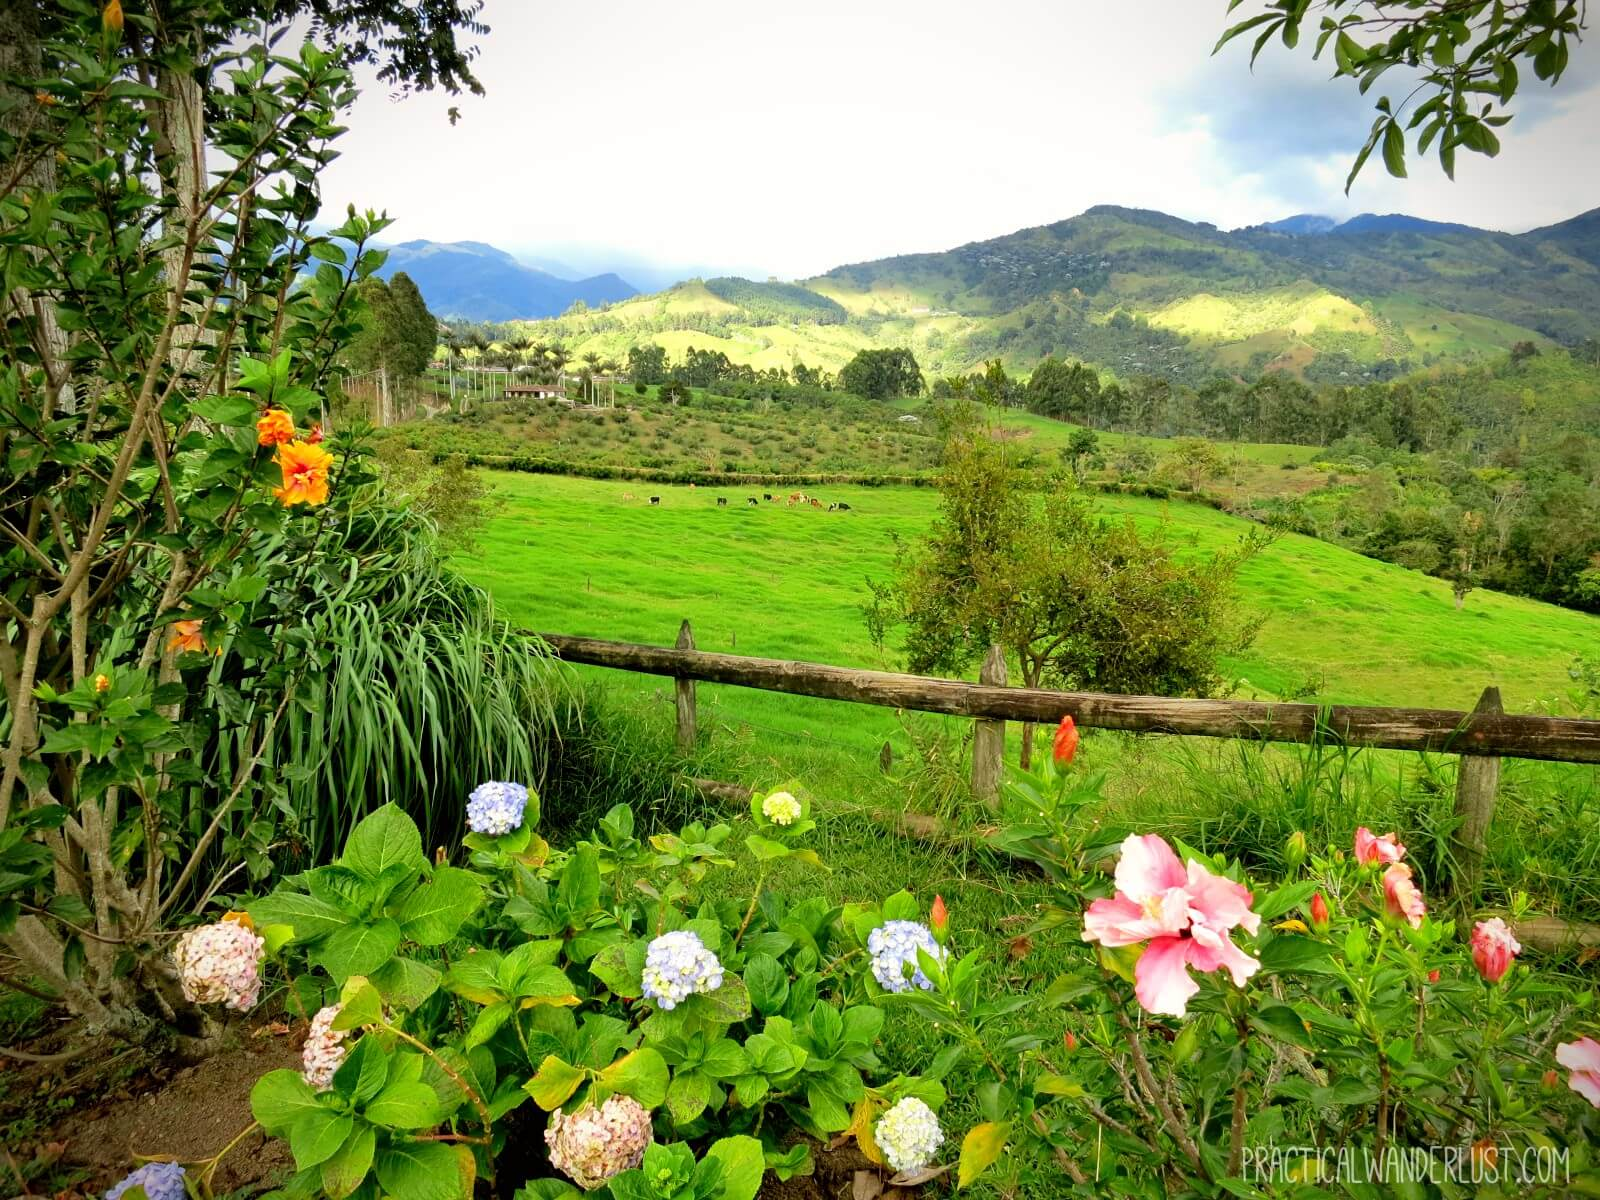 The incredible view of the Eje Cafetero from La Serrana Hostel in Salento, Colombia